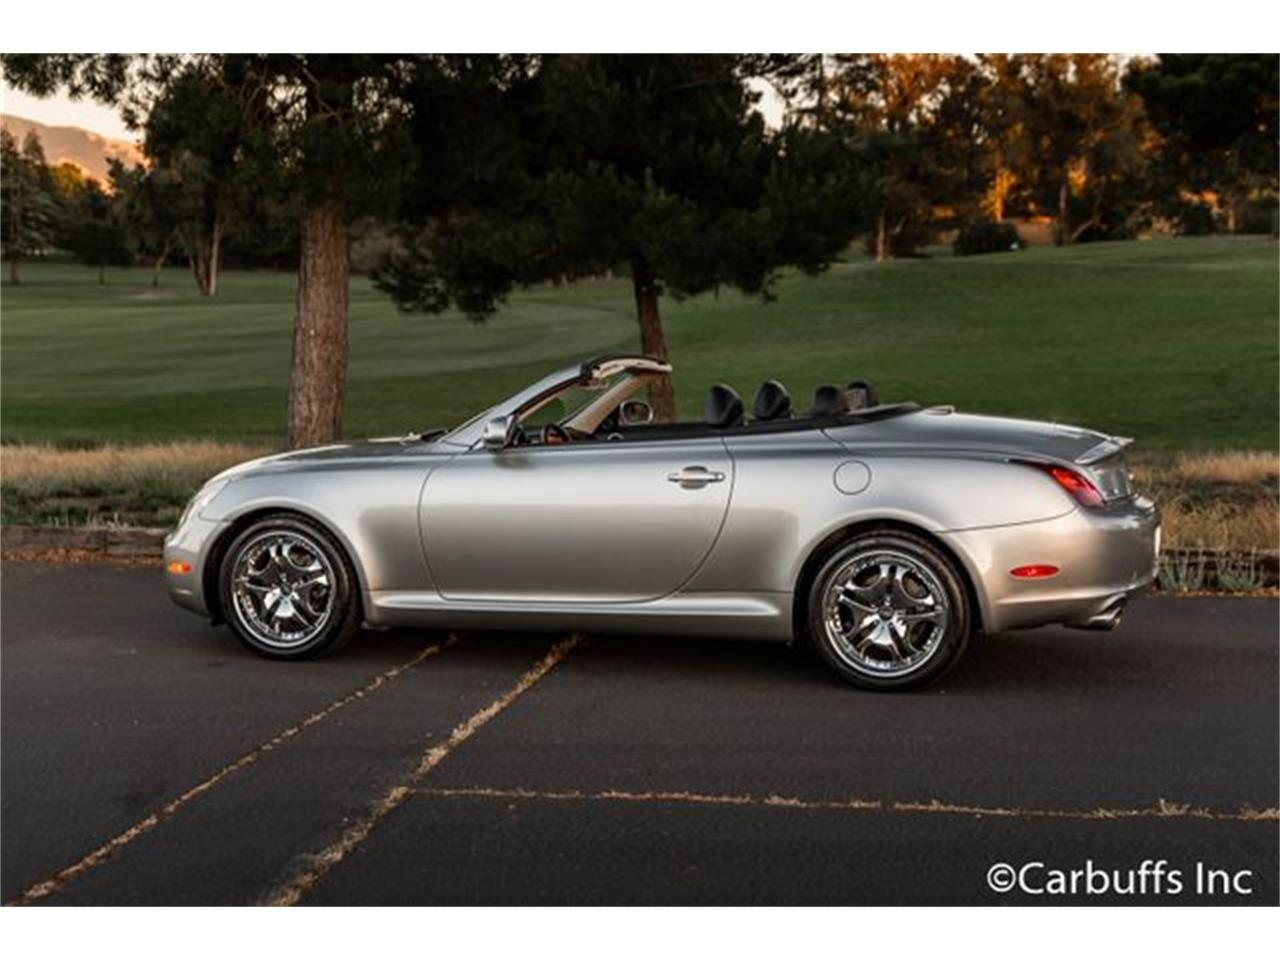 Large Picture of '04 Lexus SC400 located in Concord California - $14,950.00 - Q5AJ